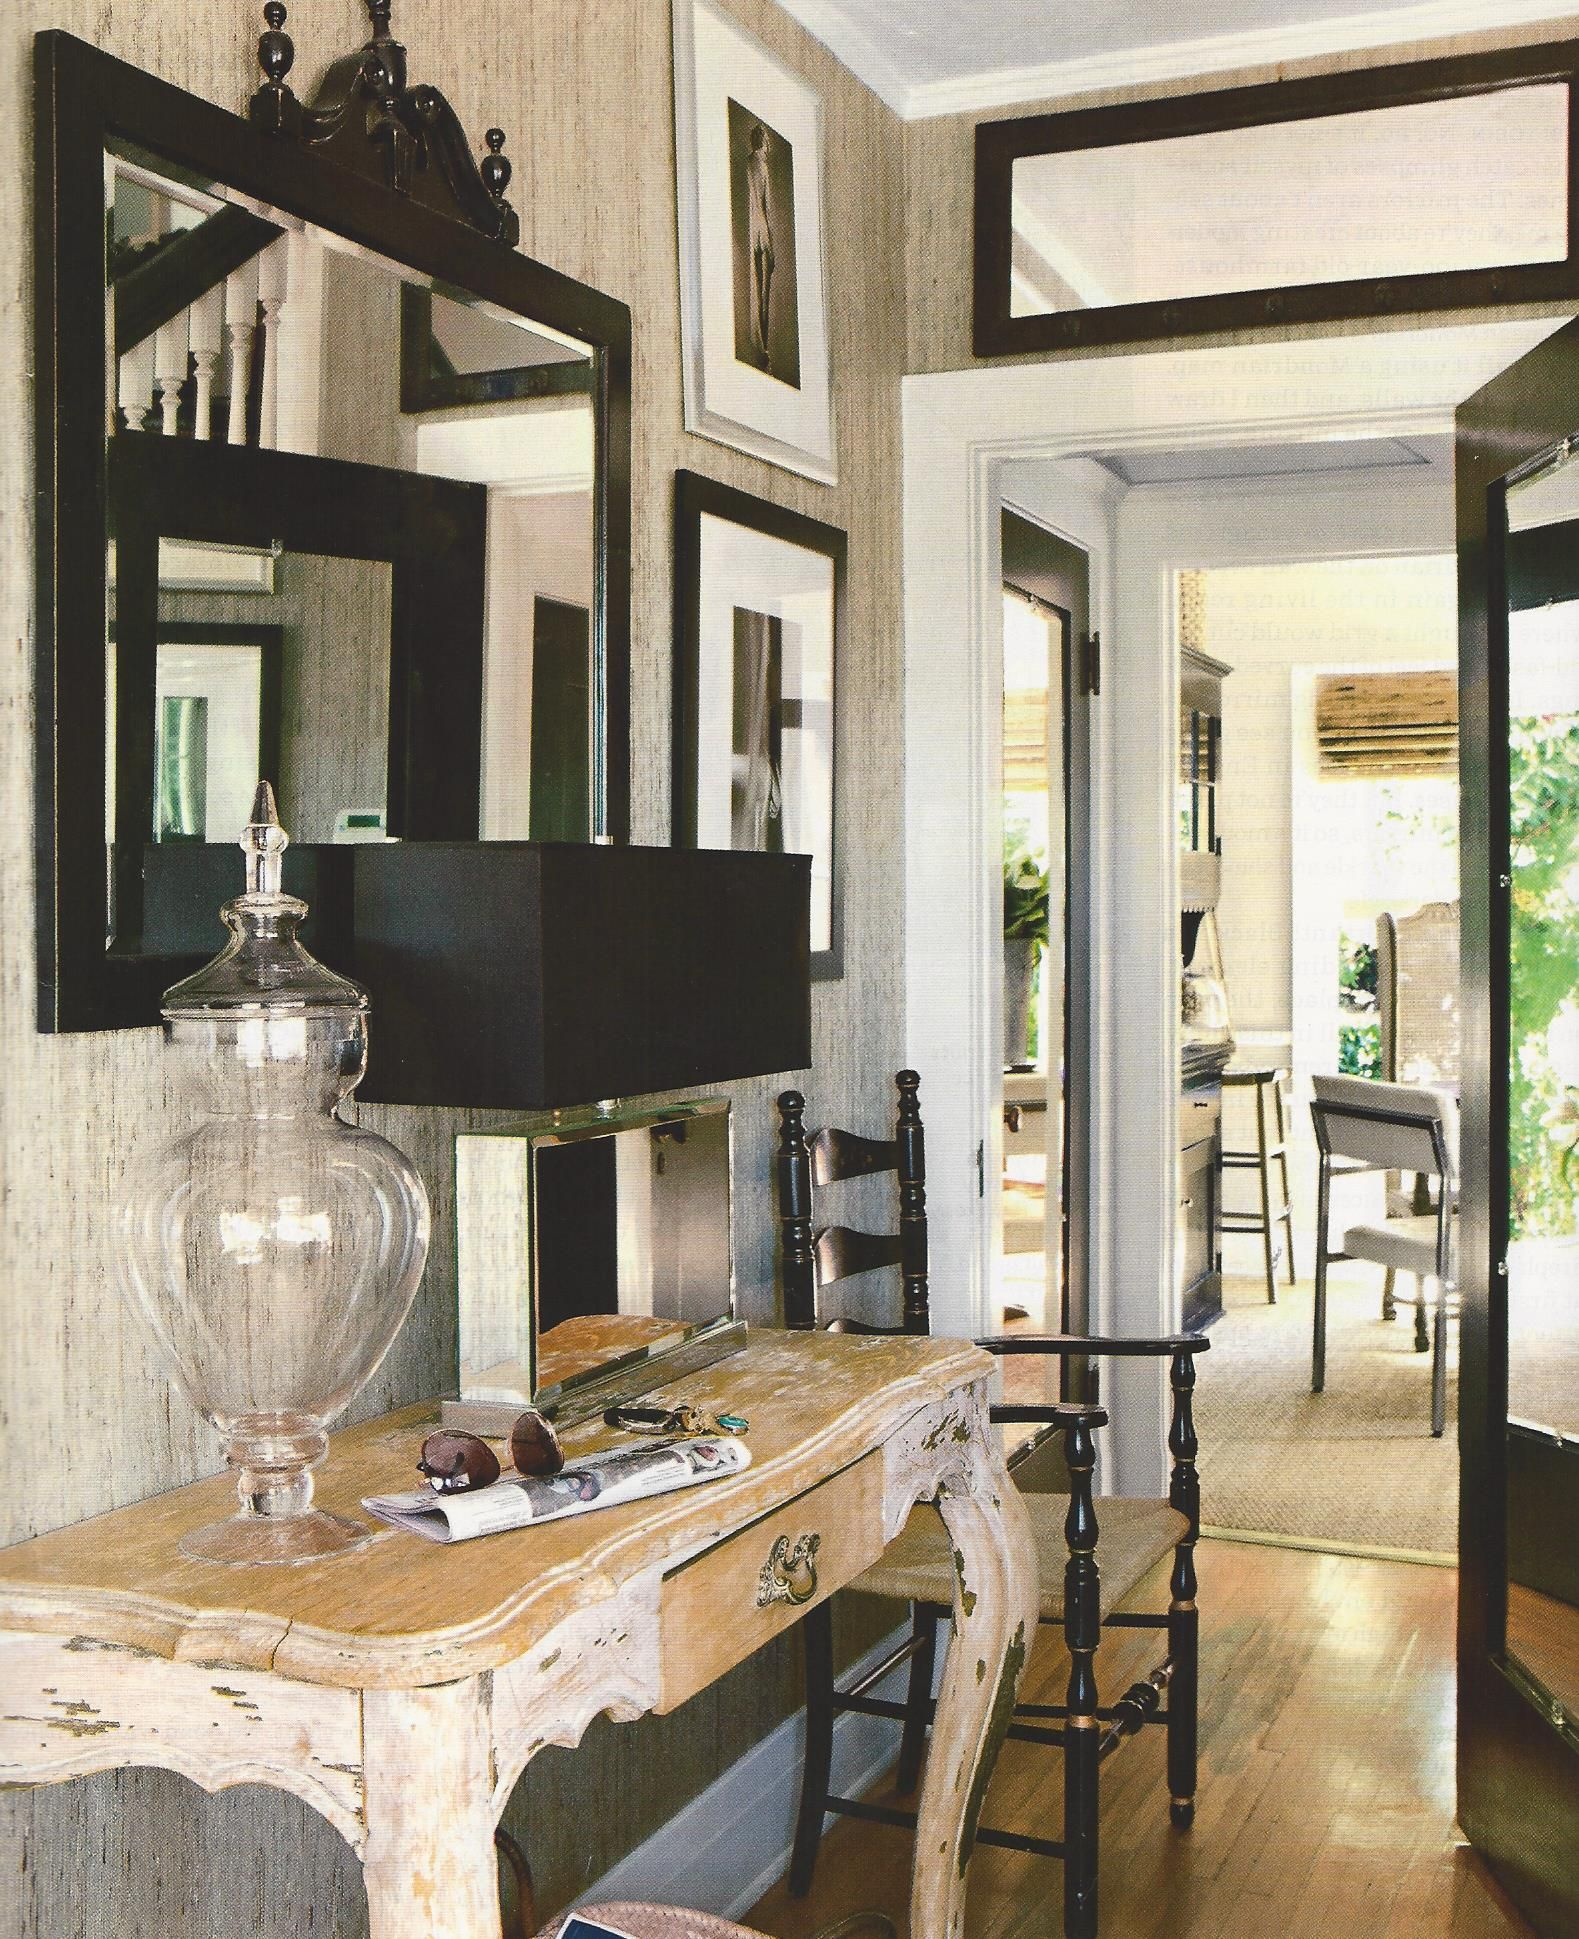 Black contrasts nicely against the neutral wall and floors with